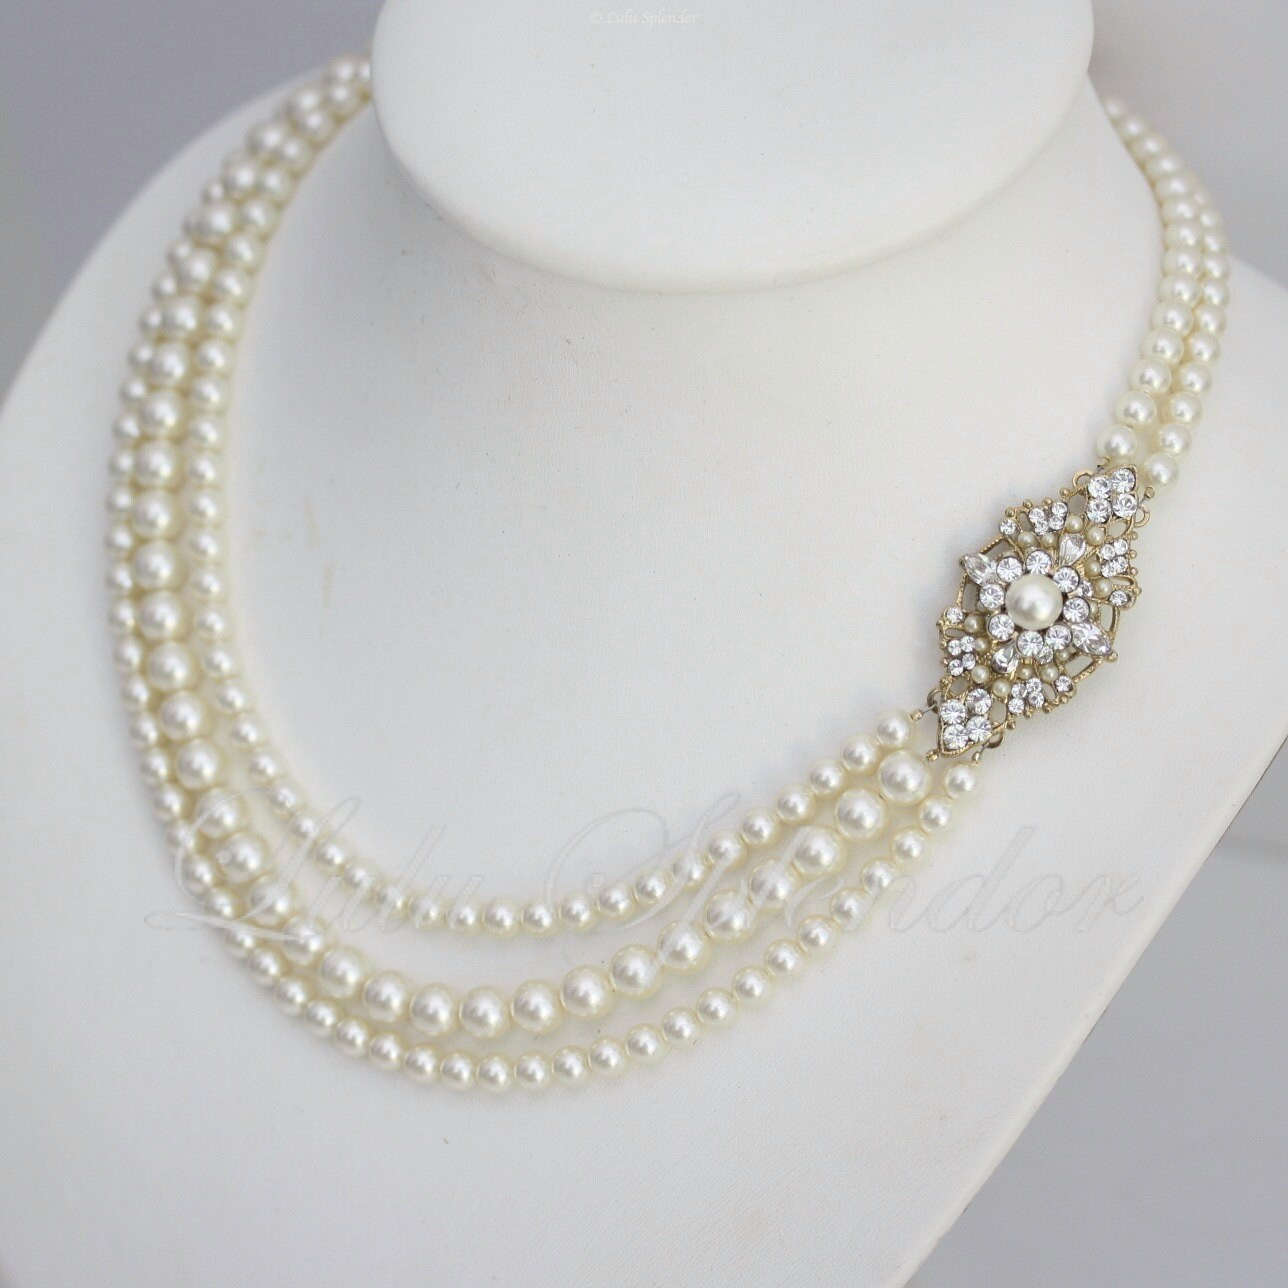 Gold Wedding Necklace Swarovski Pearl Necklace Bridal Necklace